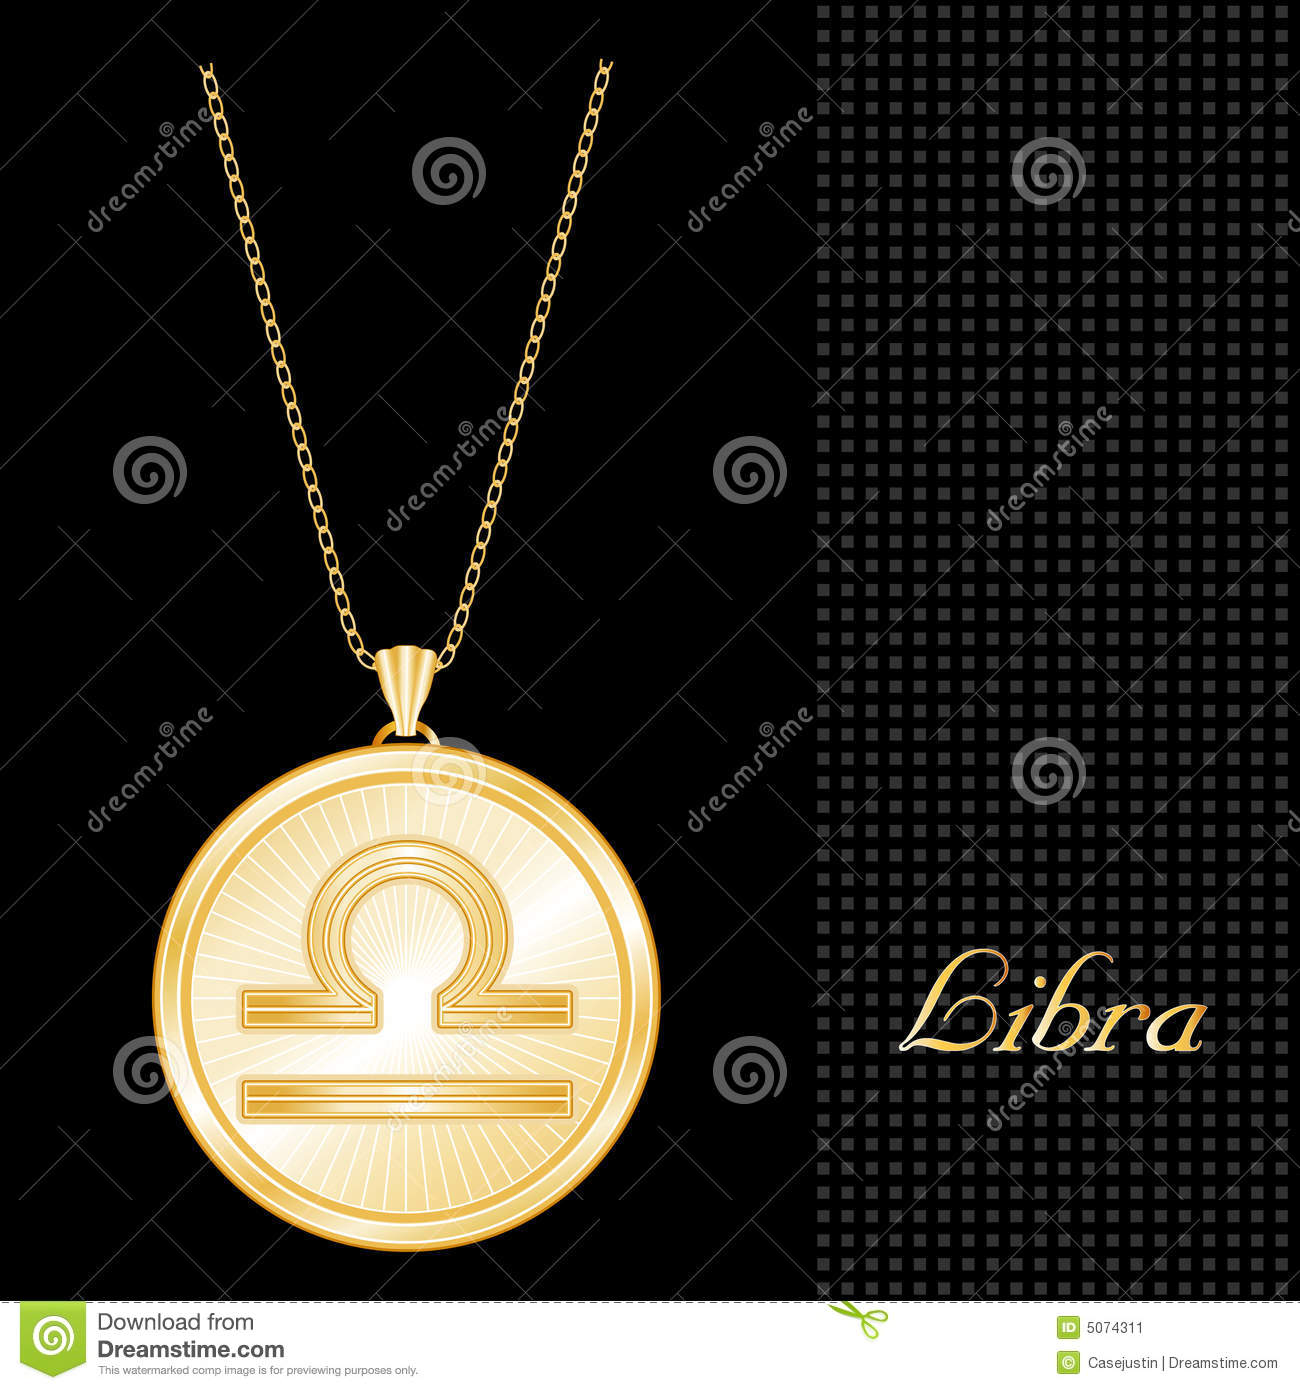 Golden Libra Pendant Necklace Stock Image Image 5074311